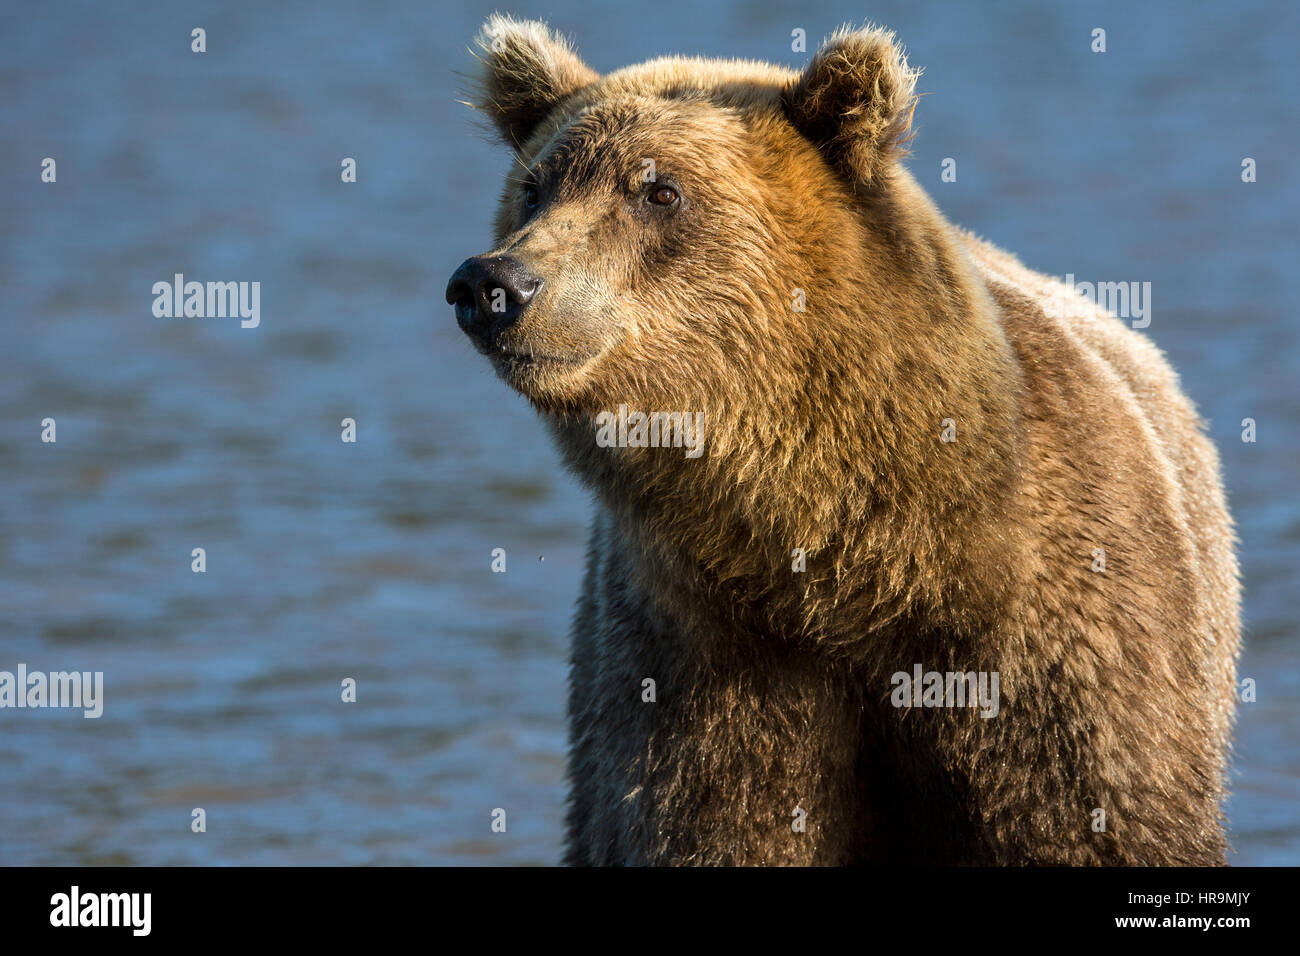 Brown bear catching fish in Kurile Lake of Southern Kamchatka Wildlife Refuge in Russia Stock Photo